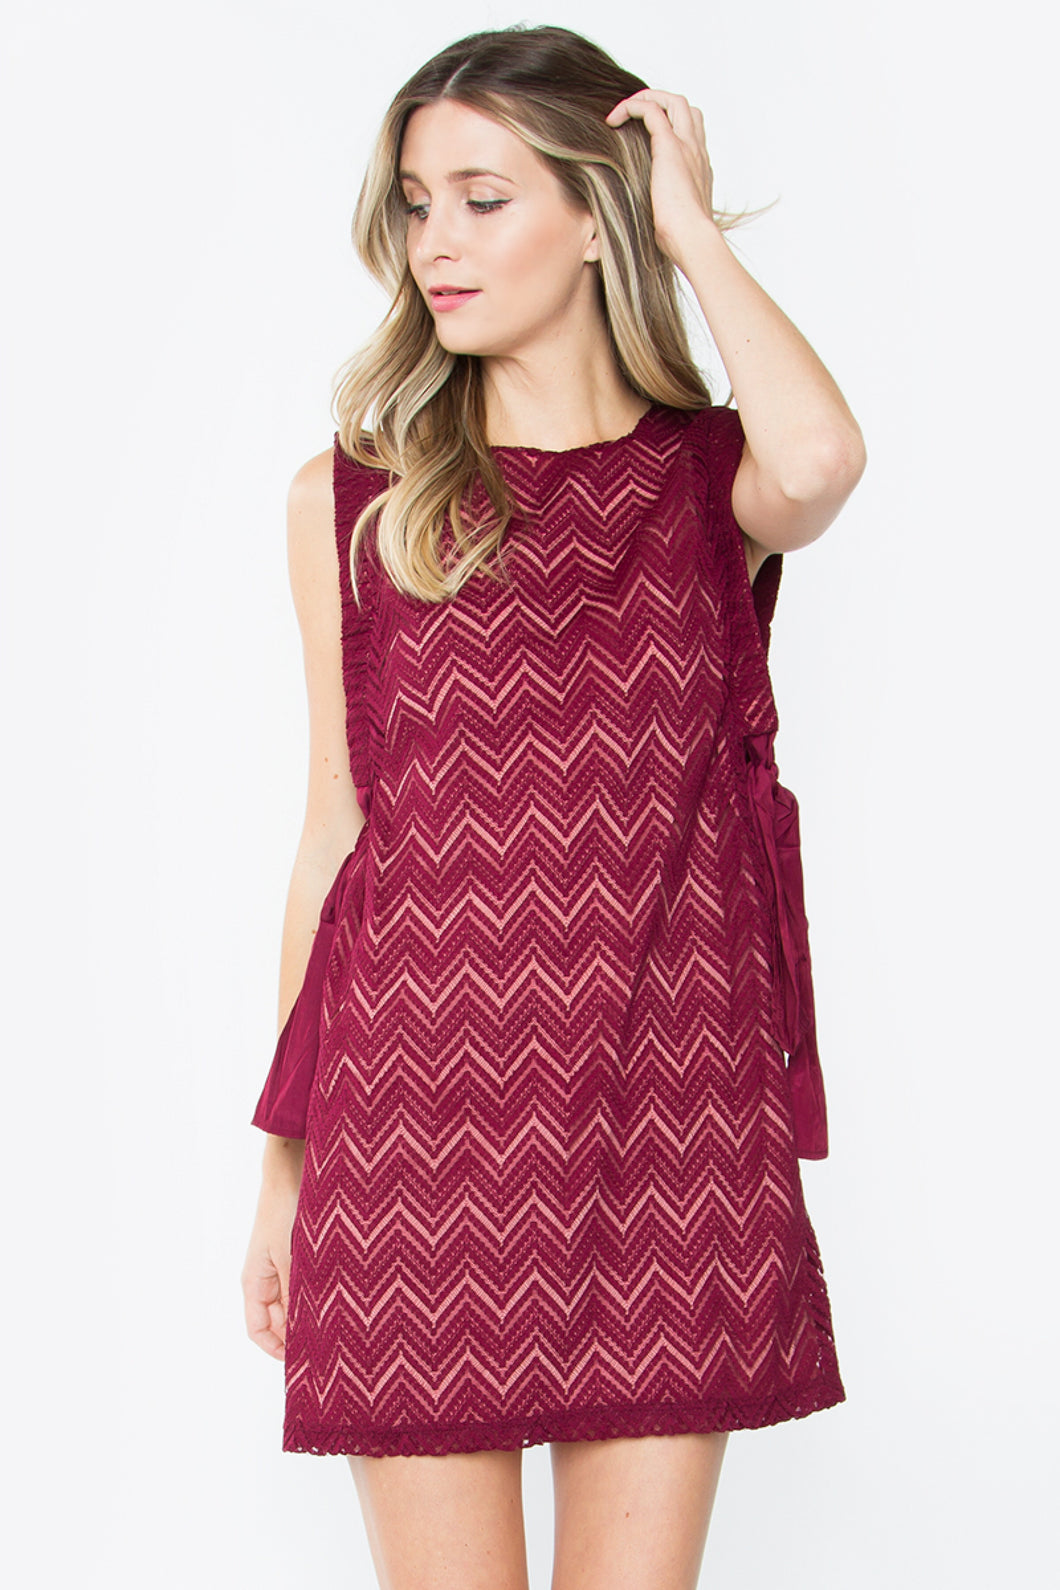 Chevron Tie Dress